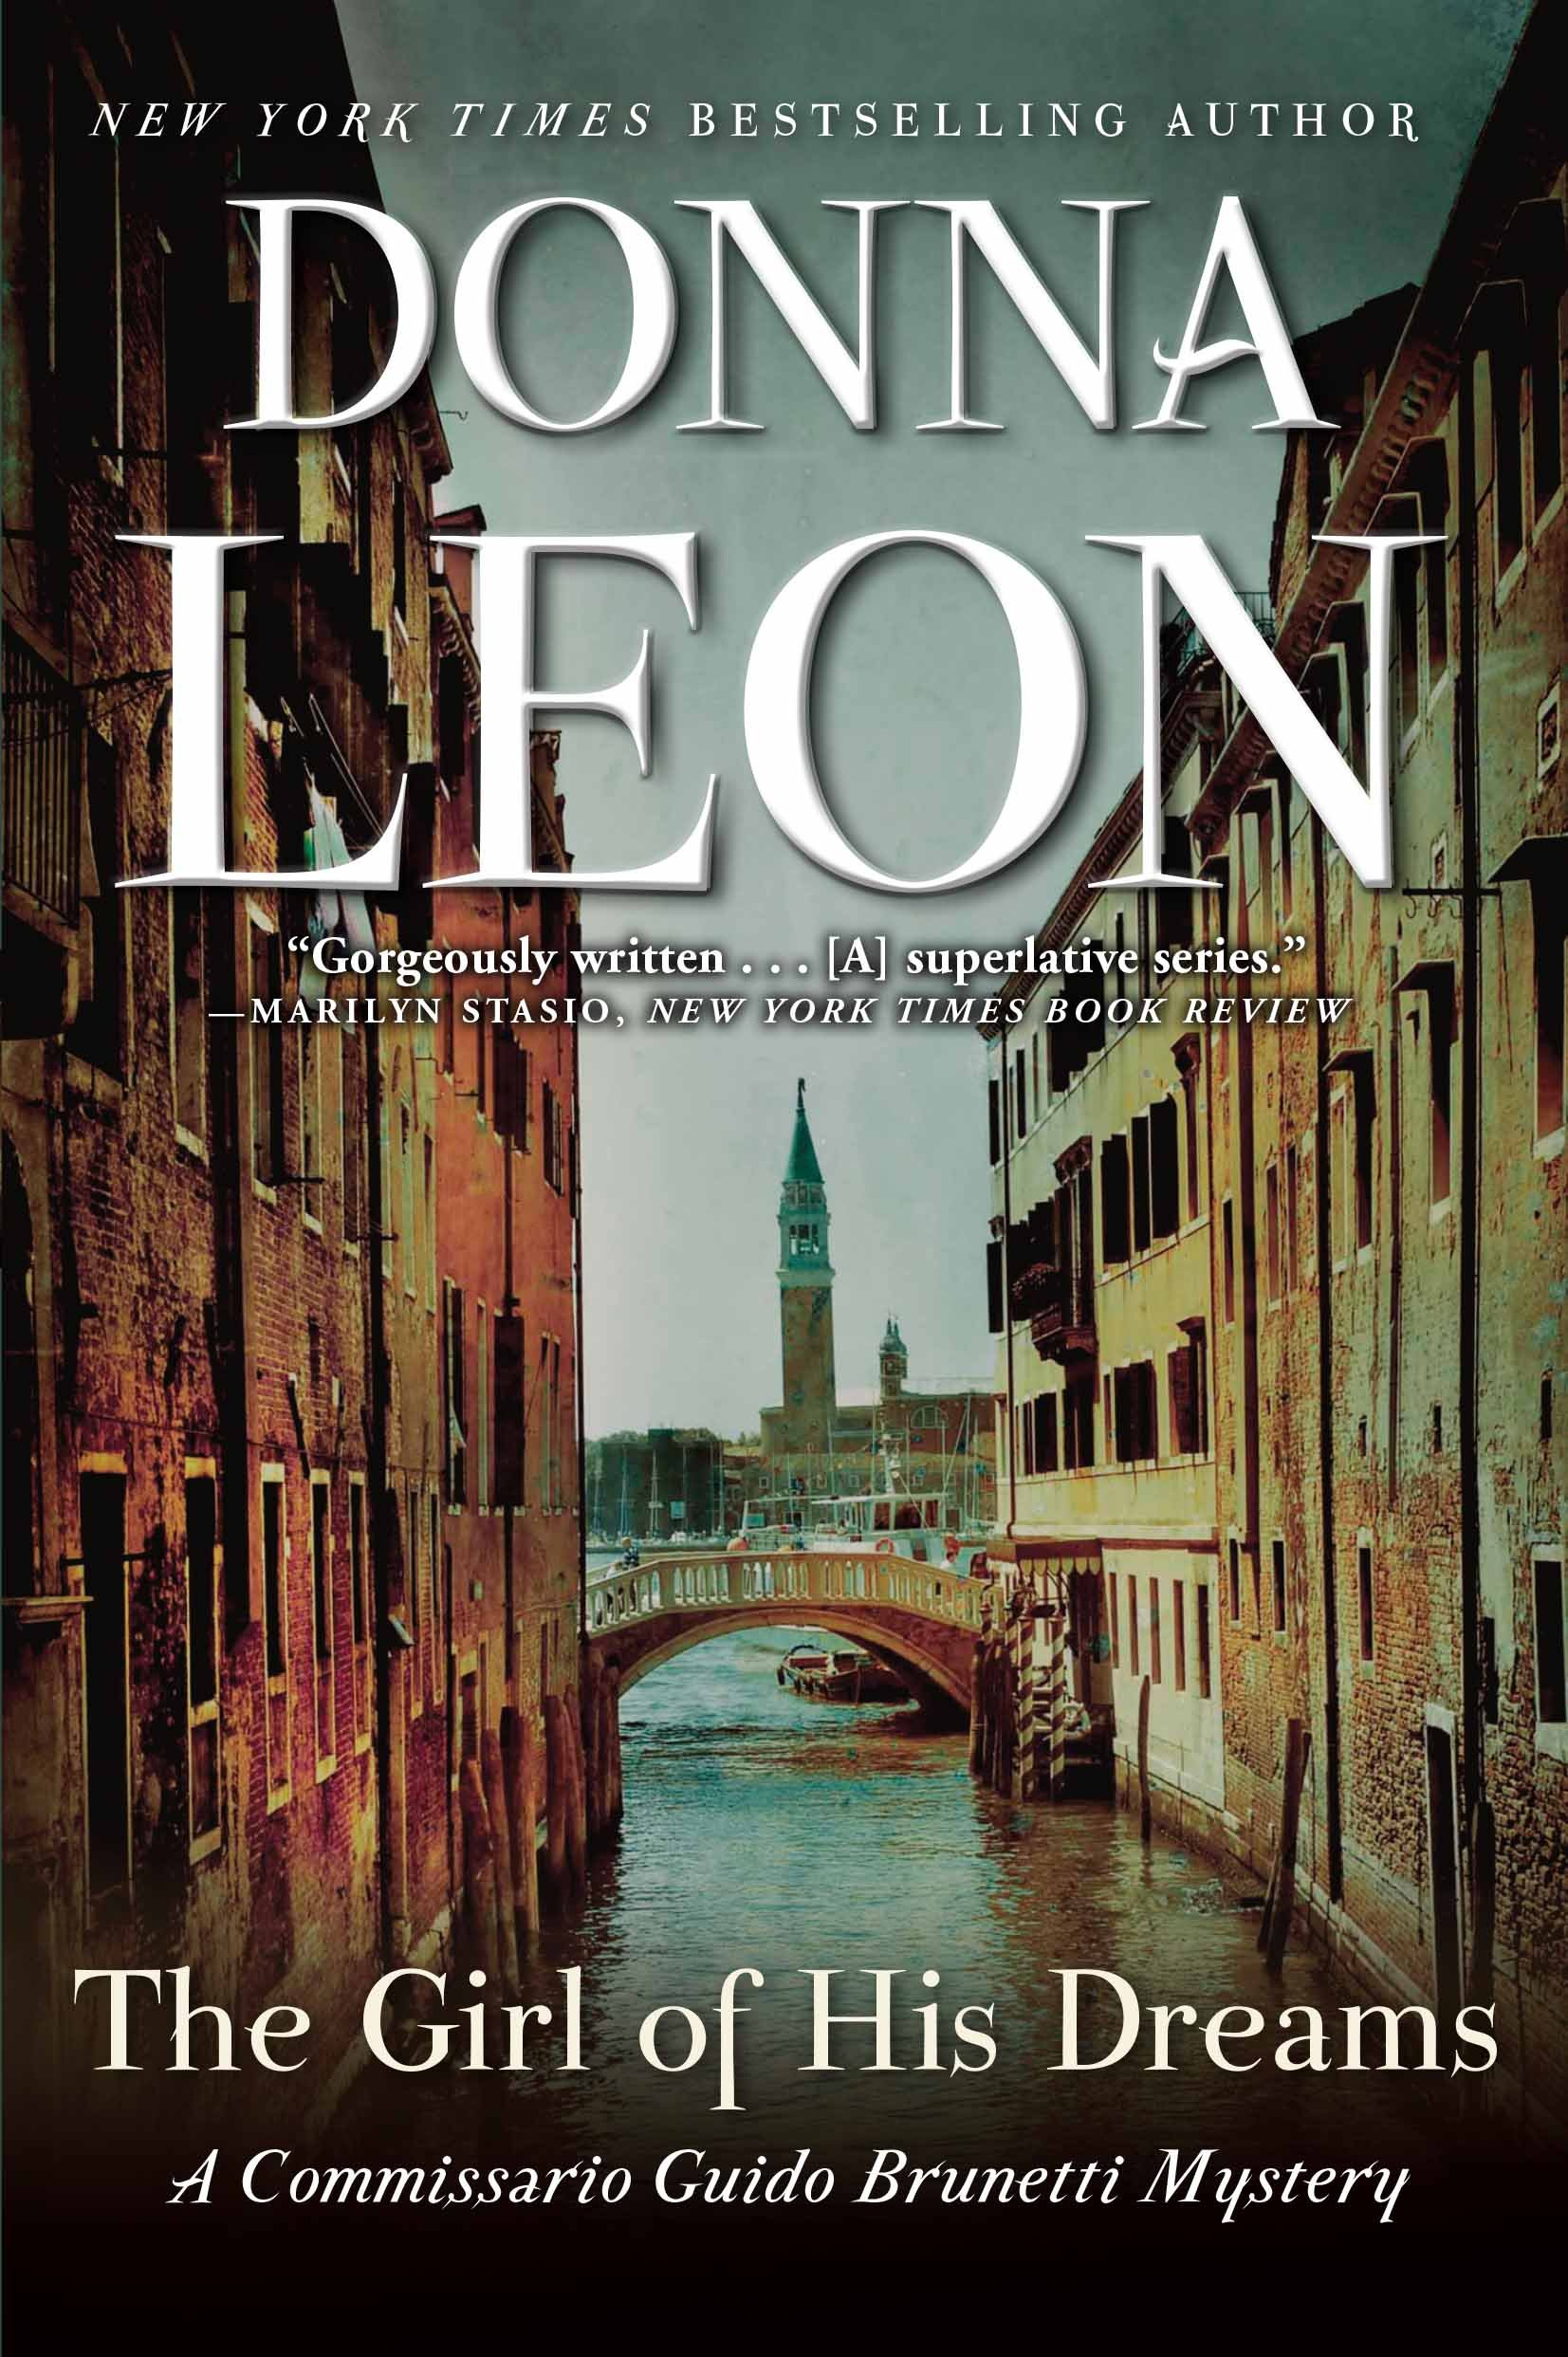 The Girl Of His Dreams A Commissario Guido Brunetti Mystery Donna Leon 9780802126917 Books